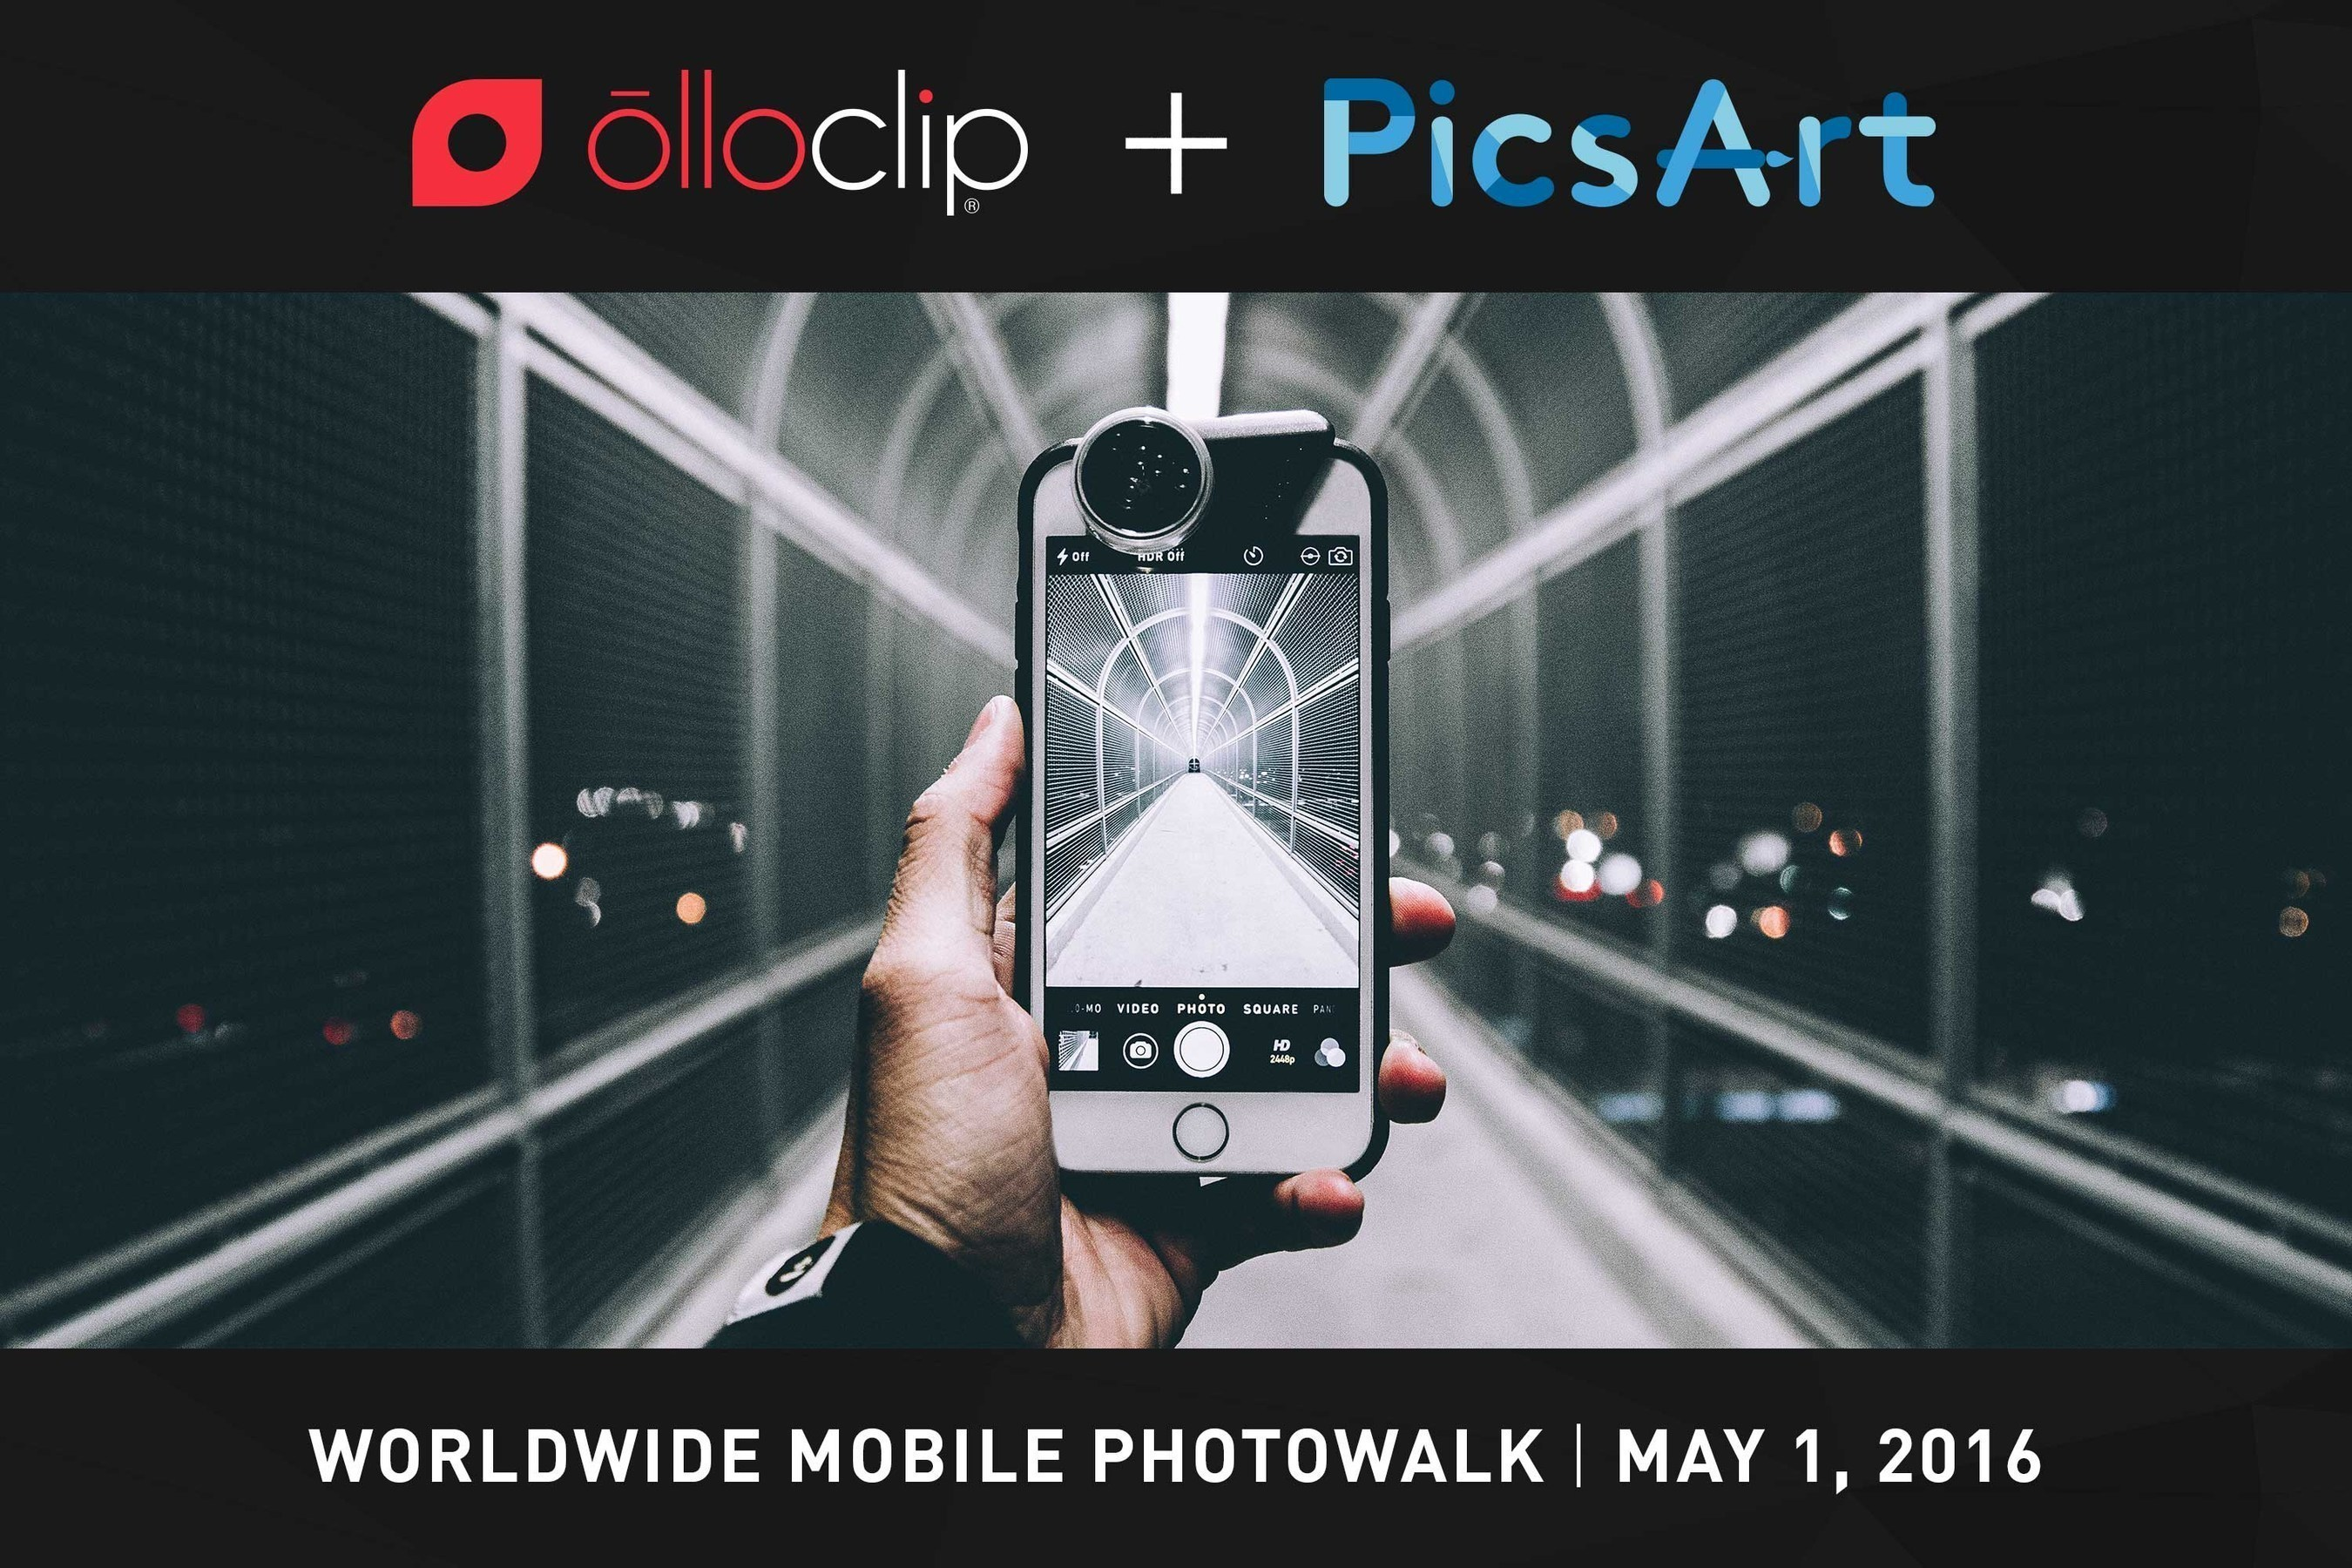 olloclip and PicsArt to Host First, Worldwide Mobile Photo Walk